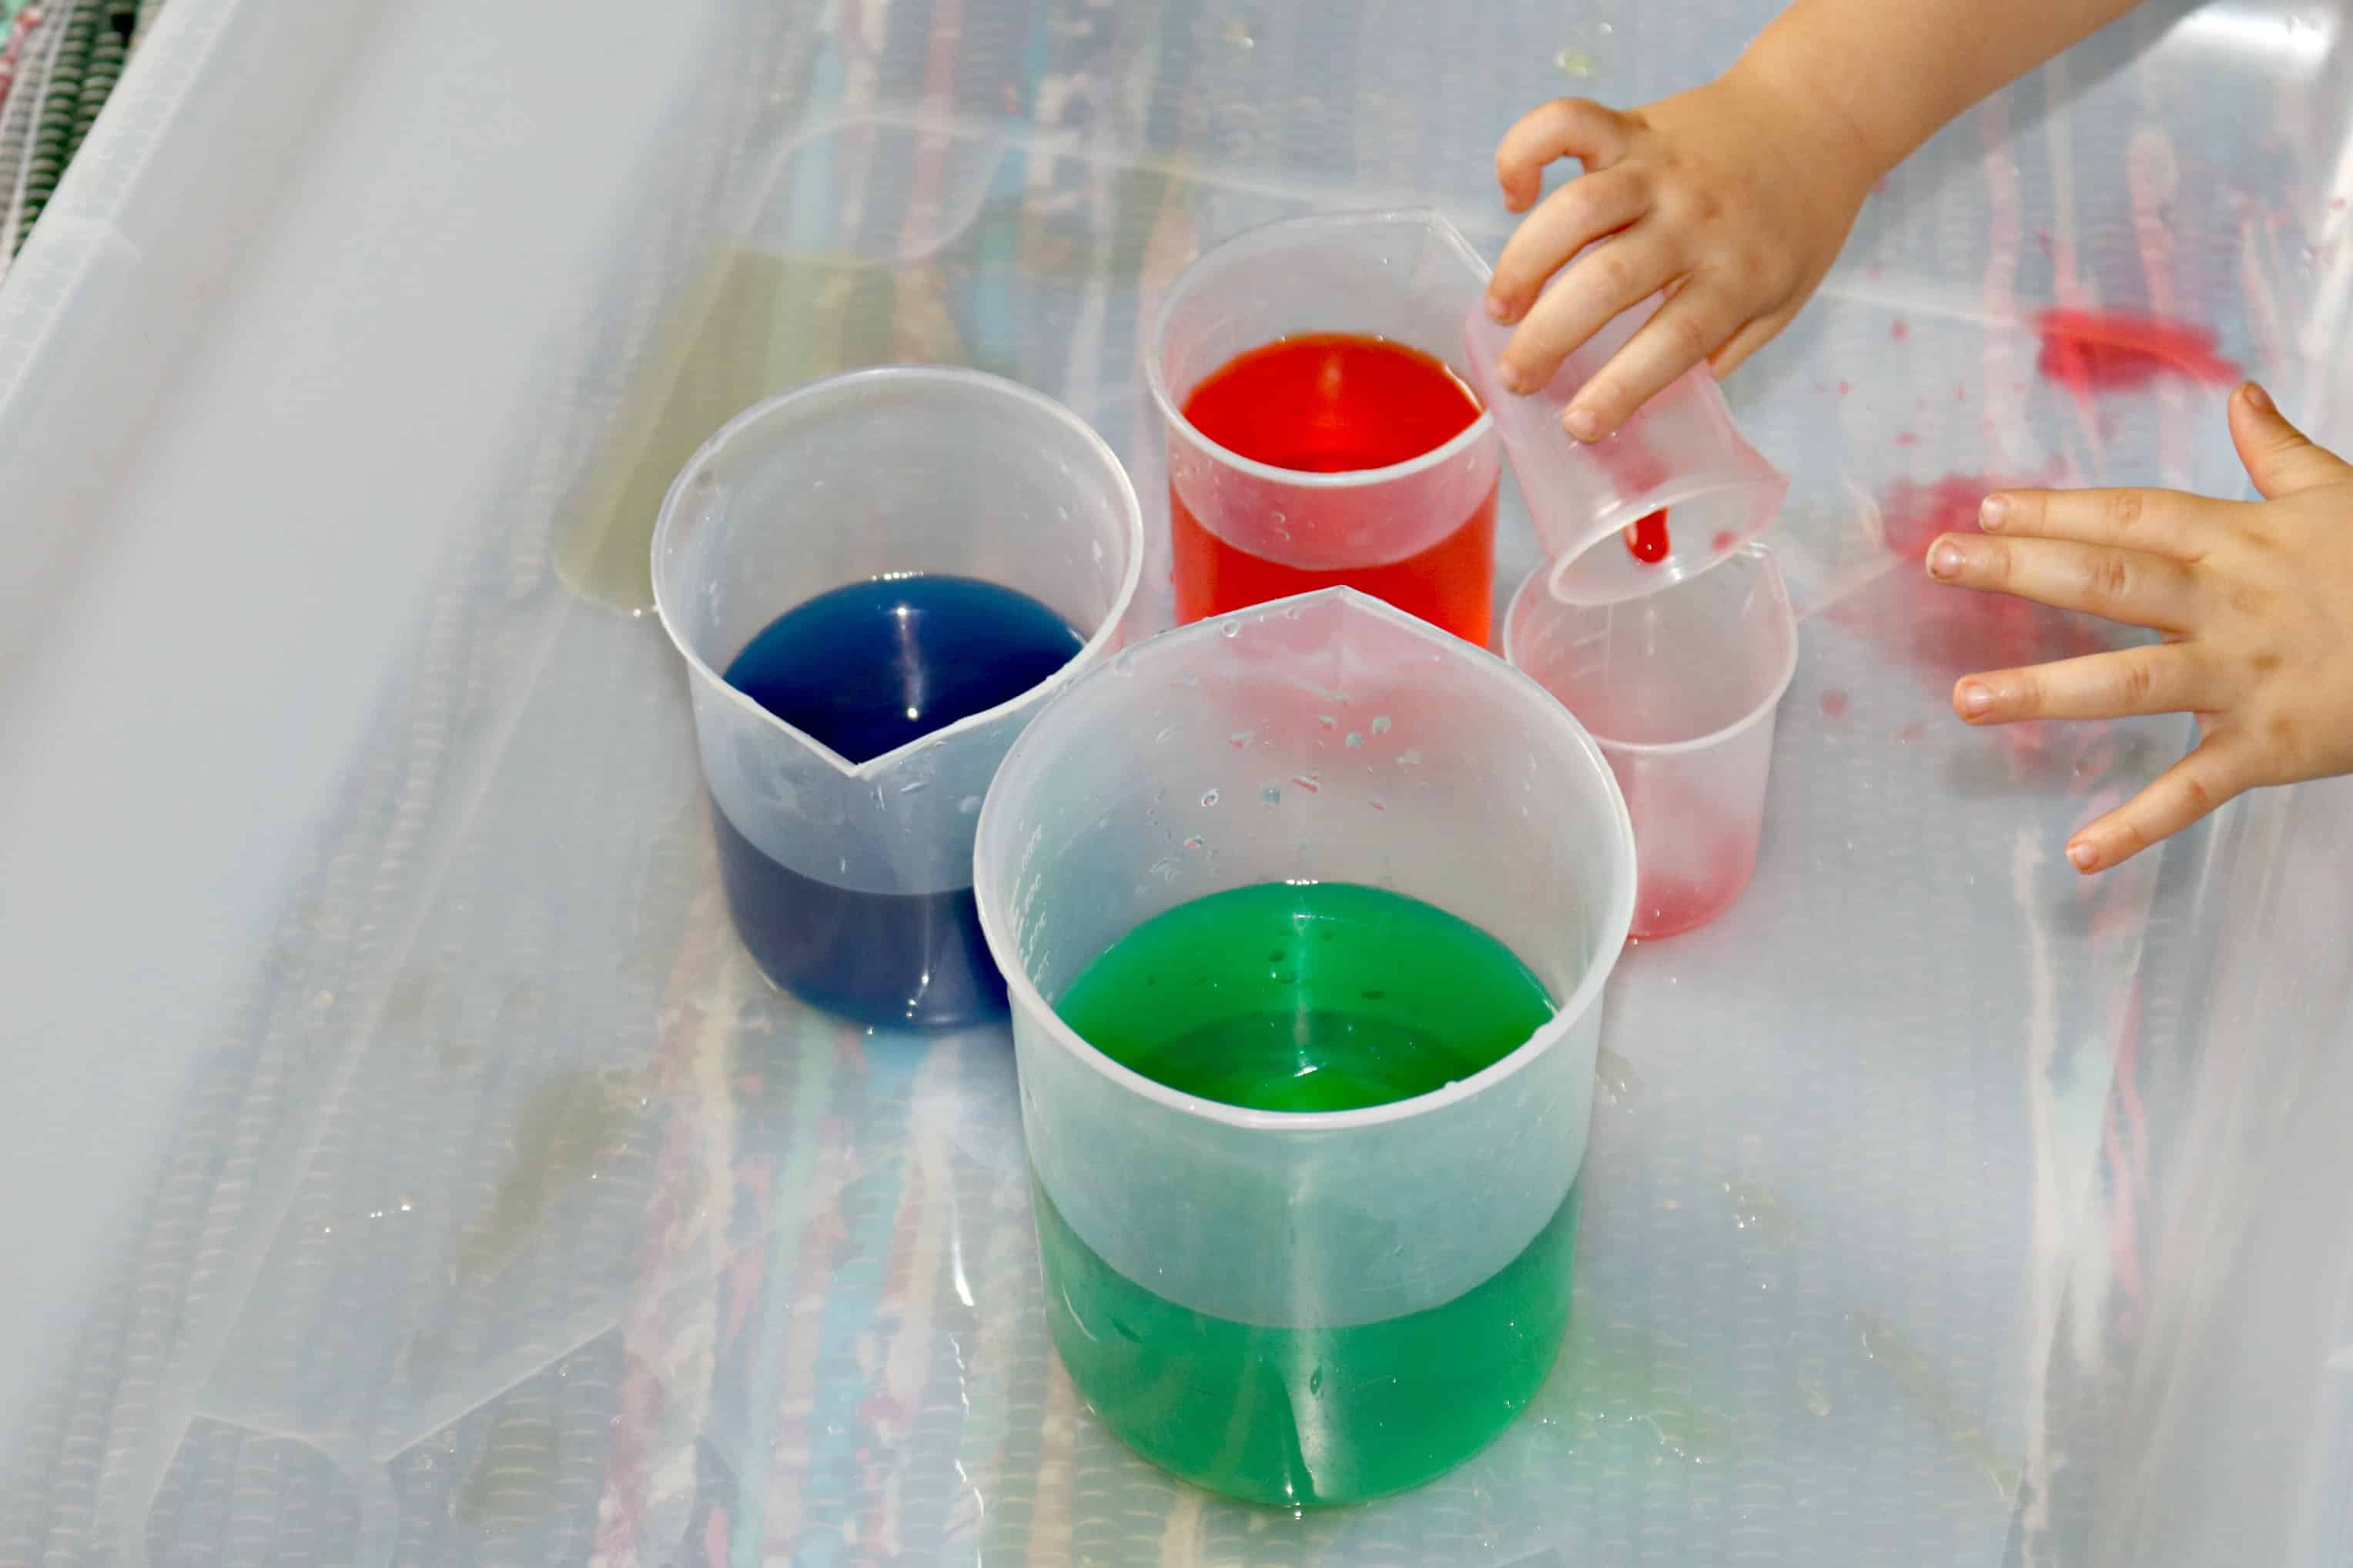 Inventing New Colors w/ Food Coloring + Water